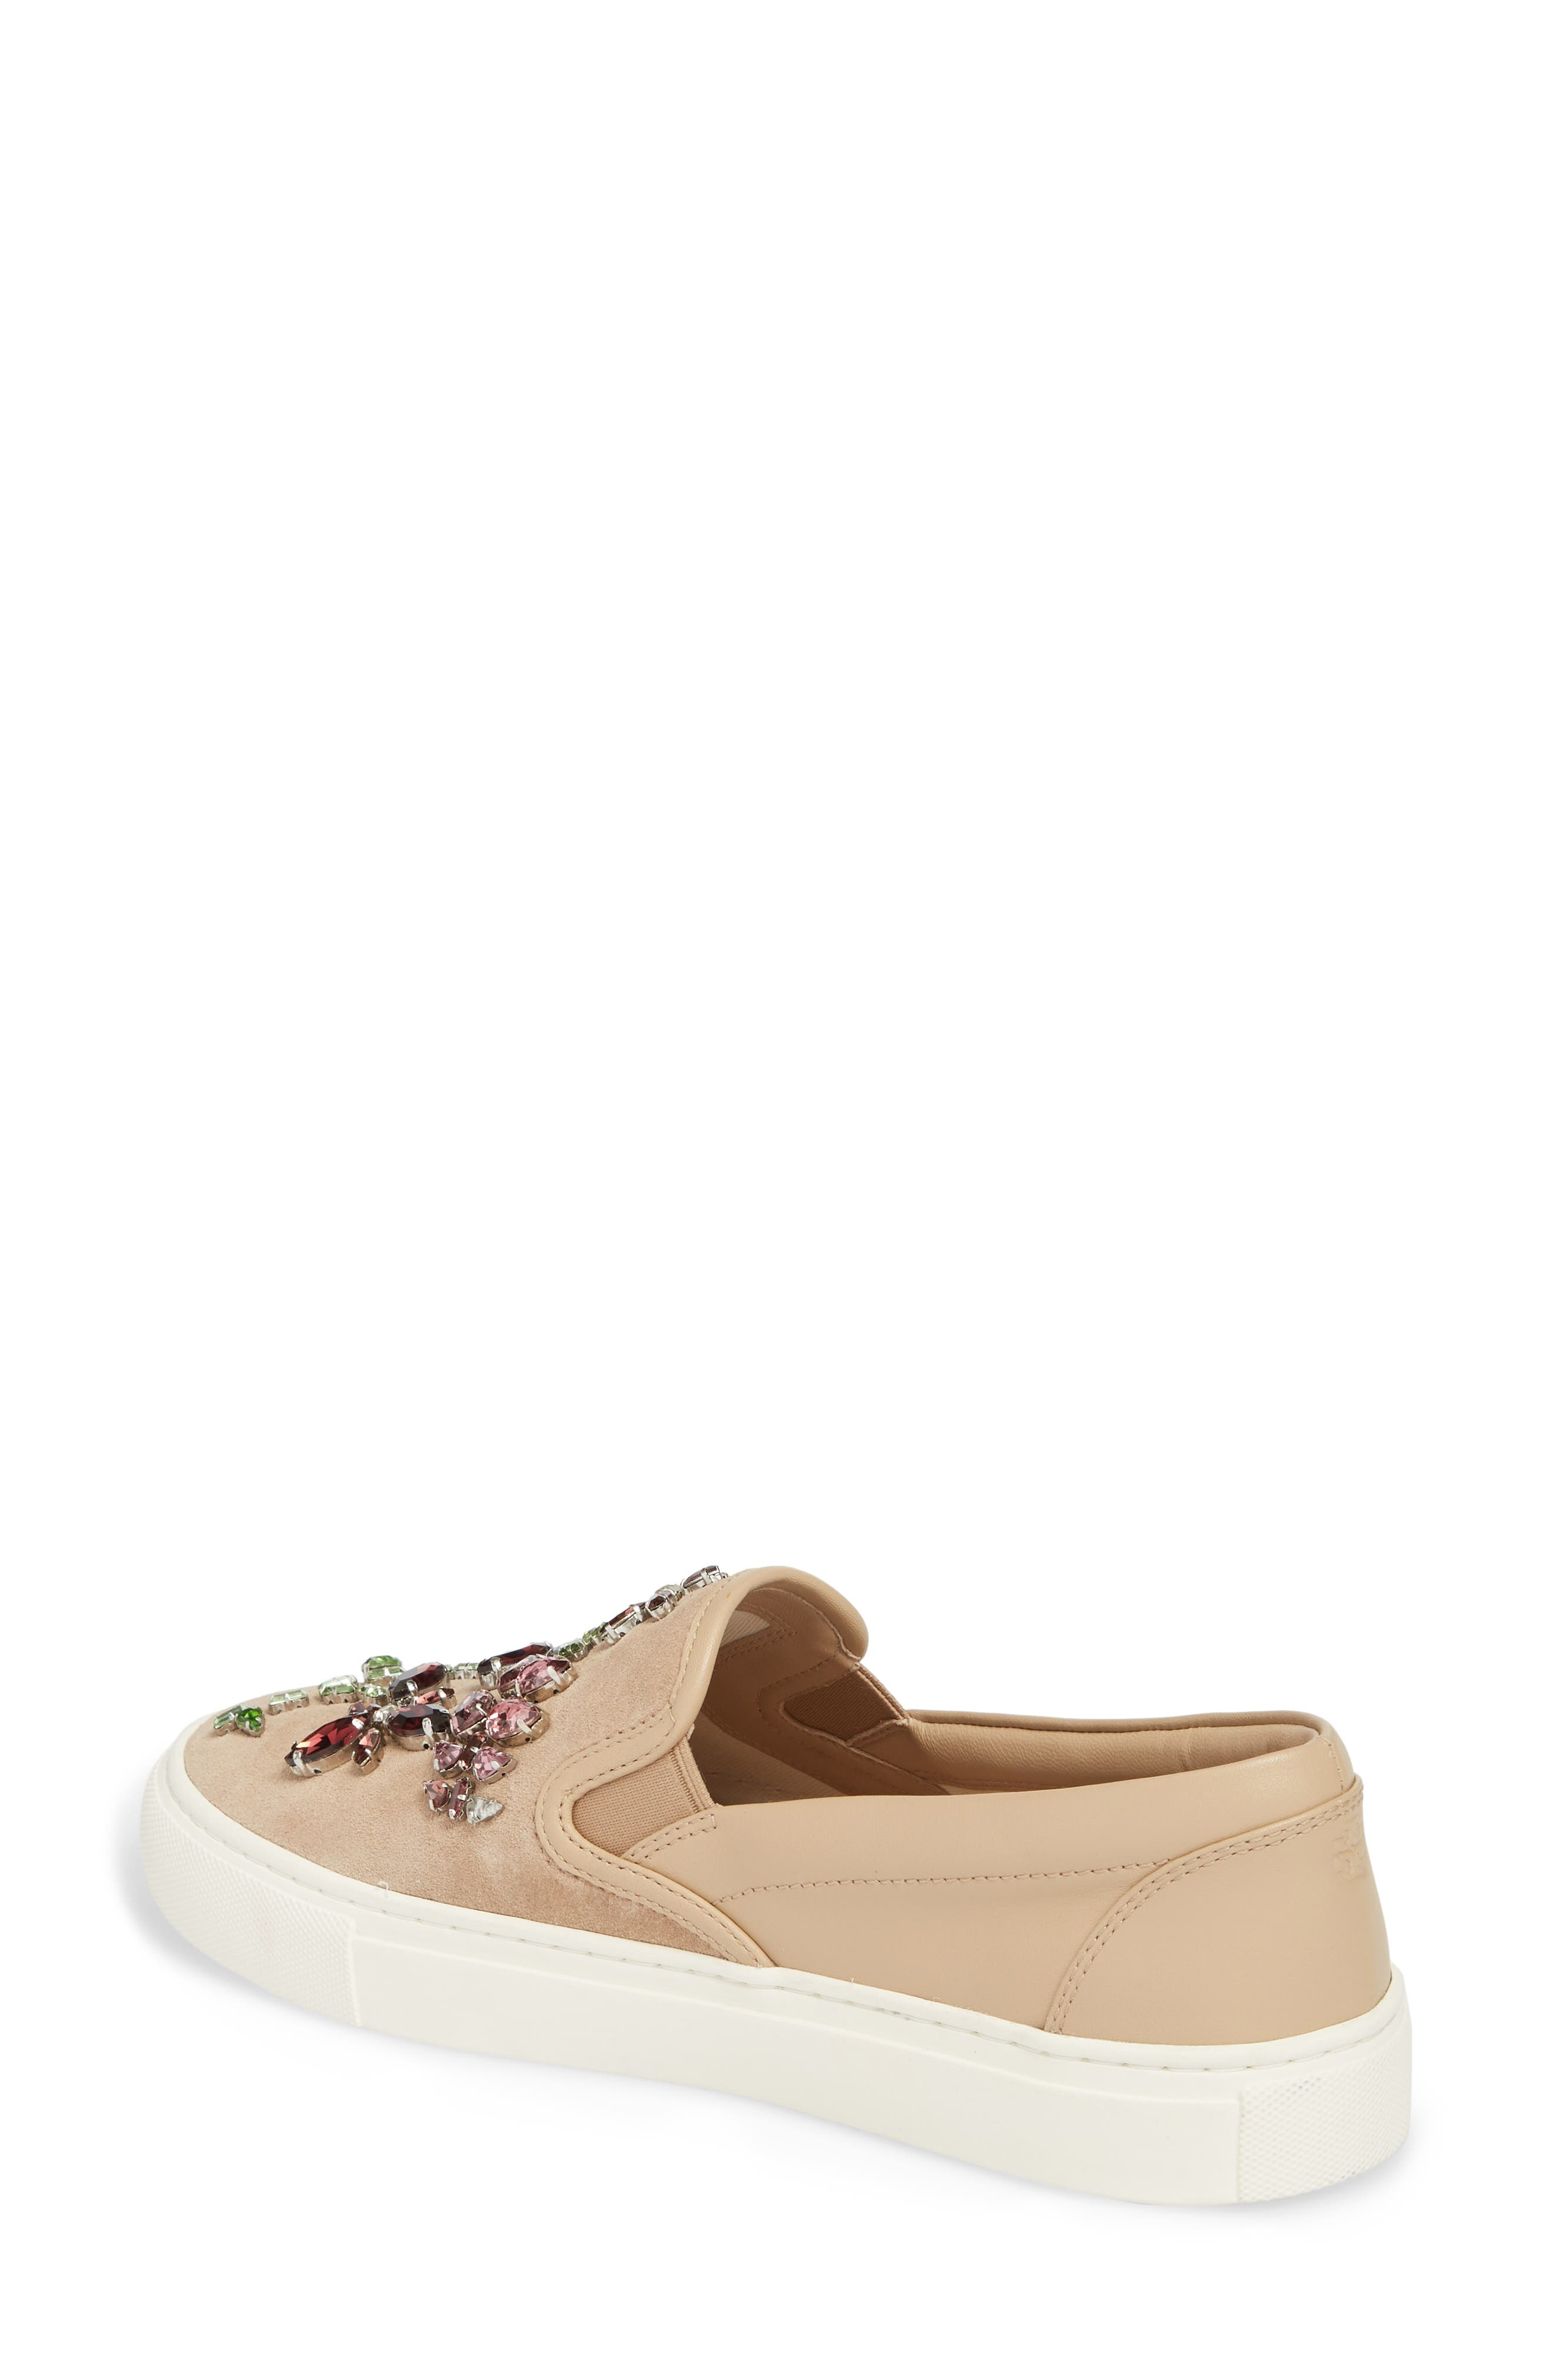 Meadow Embellished Slip-On Sneaker,                             Alternate thumbnail 2, color,                             Perfect Sand/ Multi